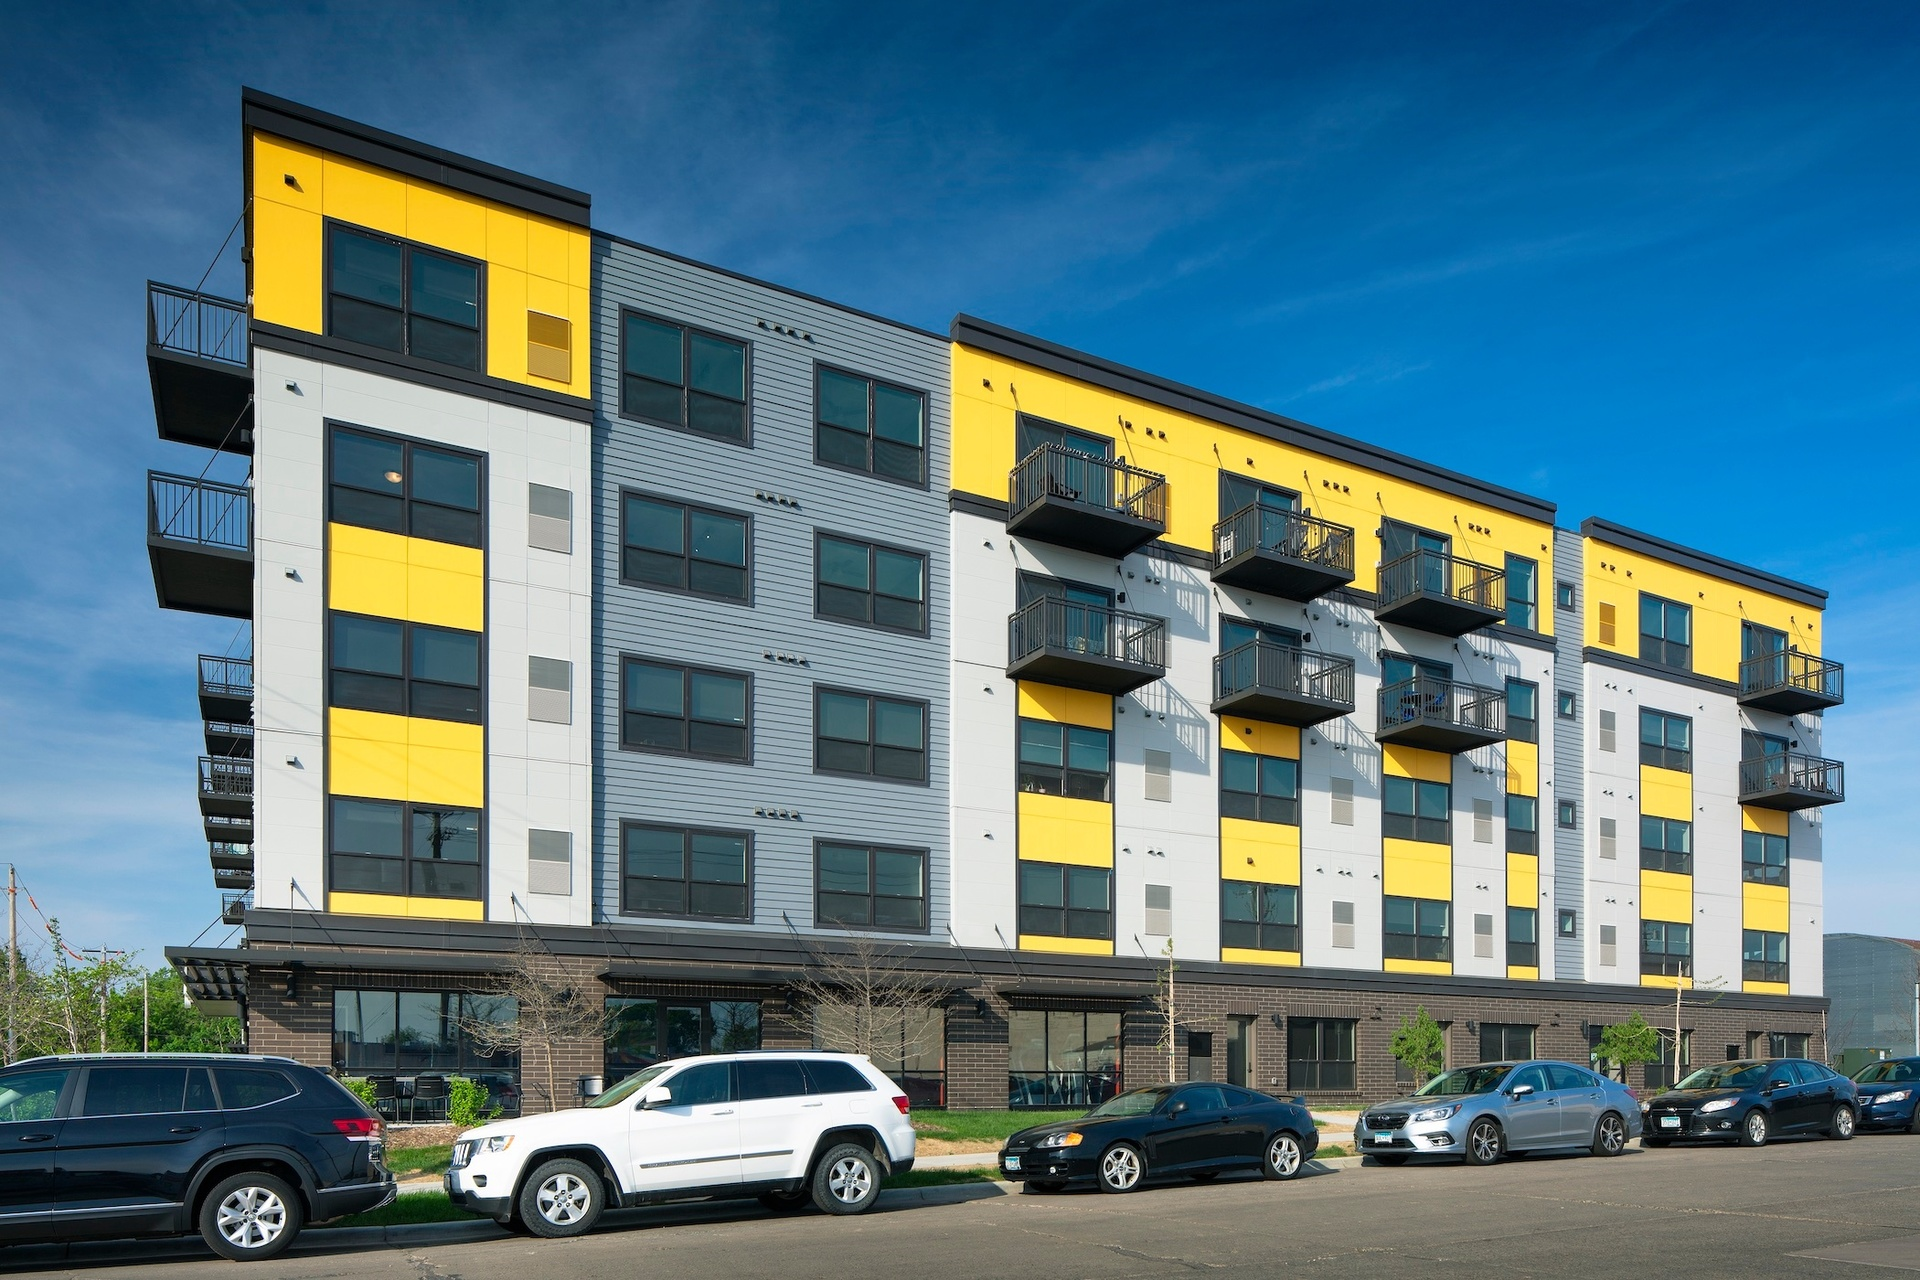 Bright exterior design and finish at the Spectrum apartments in Minneapolis, Minnesota, by DJR Architecture.